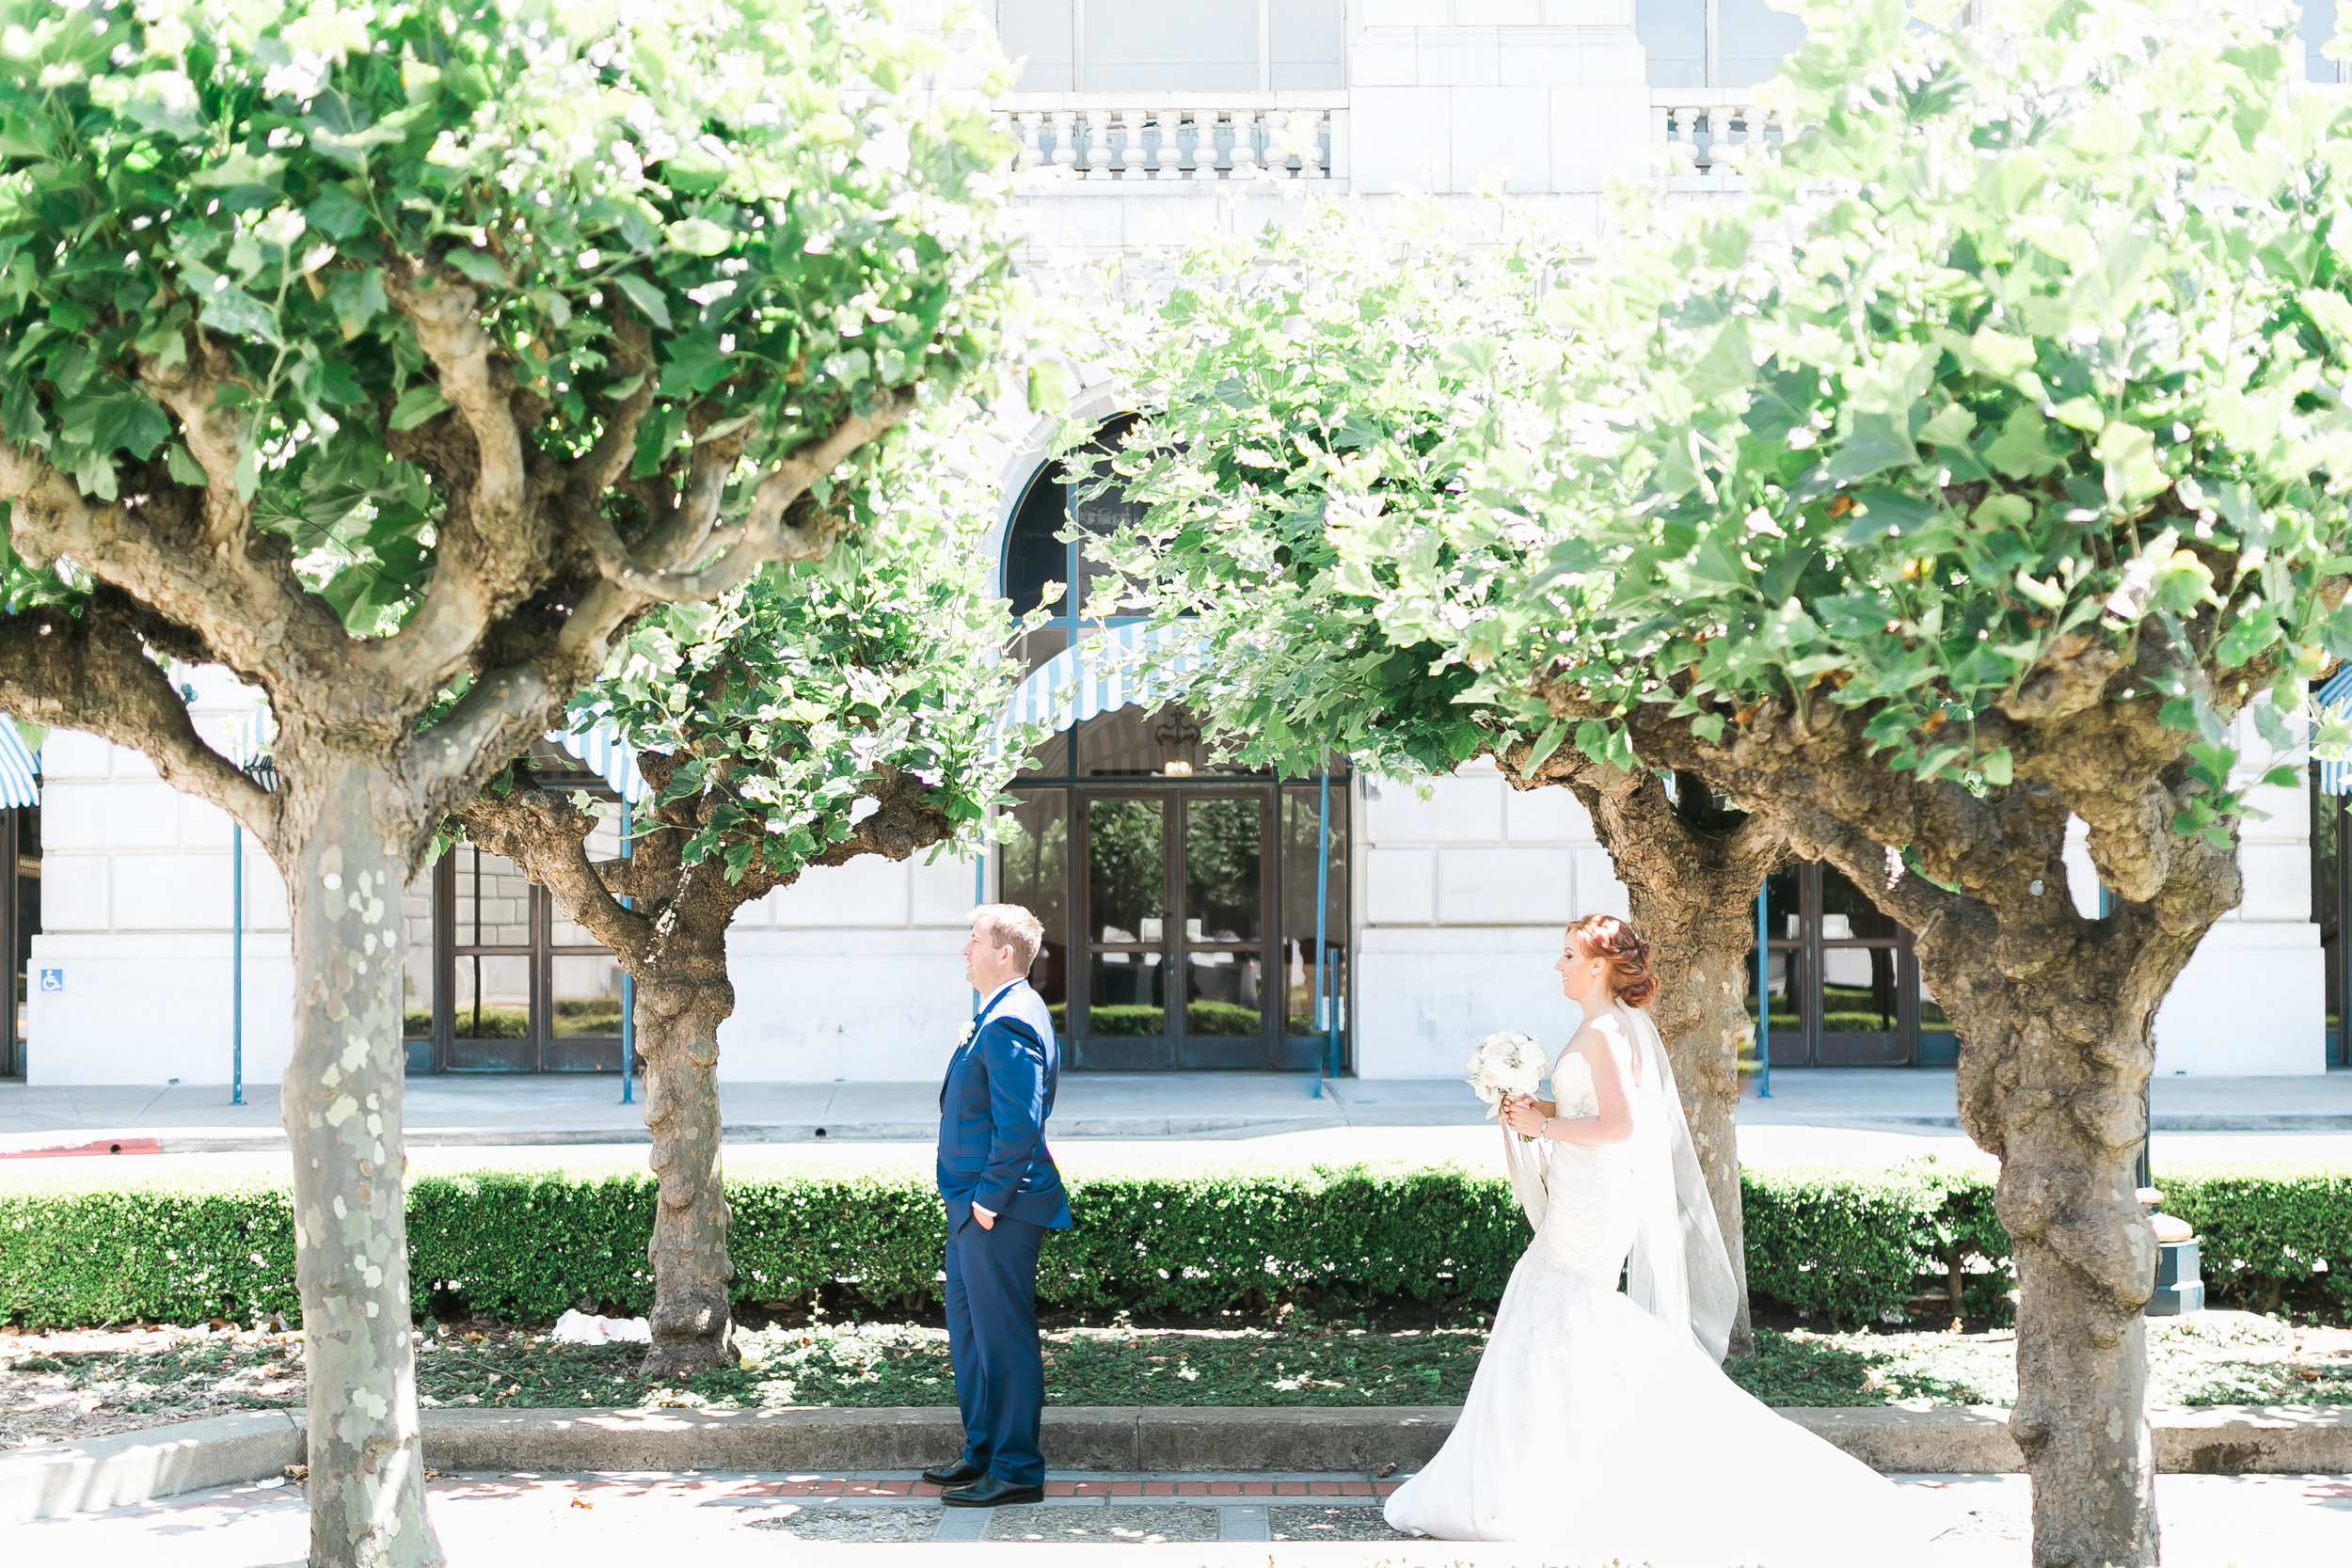 Bride-and-Groom-first-look-on-wedding-day-las-vegas-wedding-planner-green-orchid-events-J.Anne-Photography.jpg